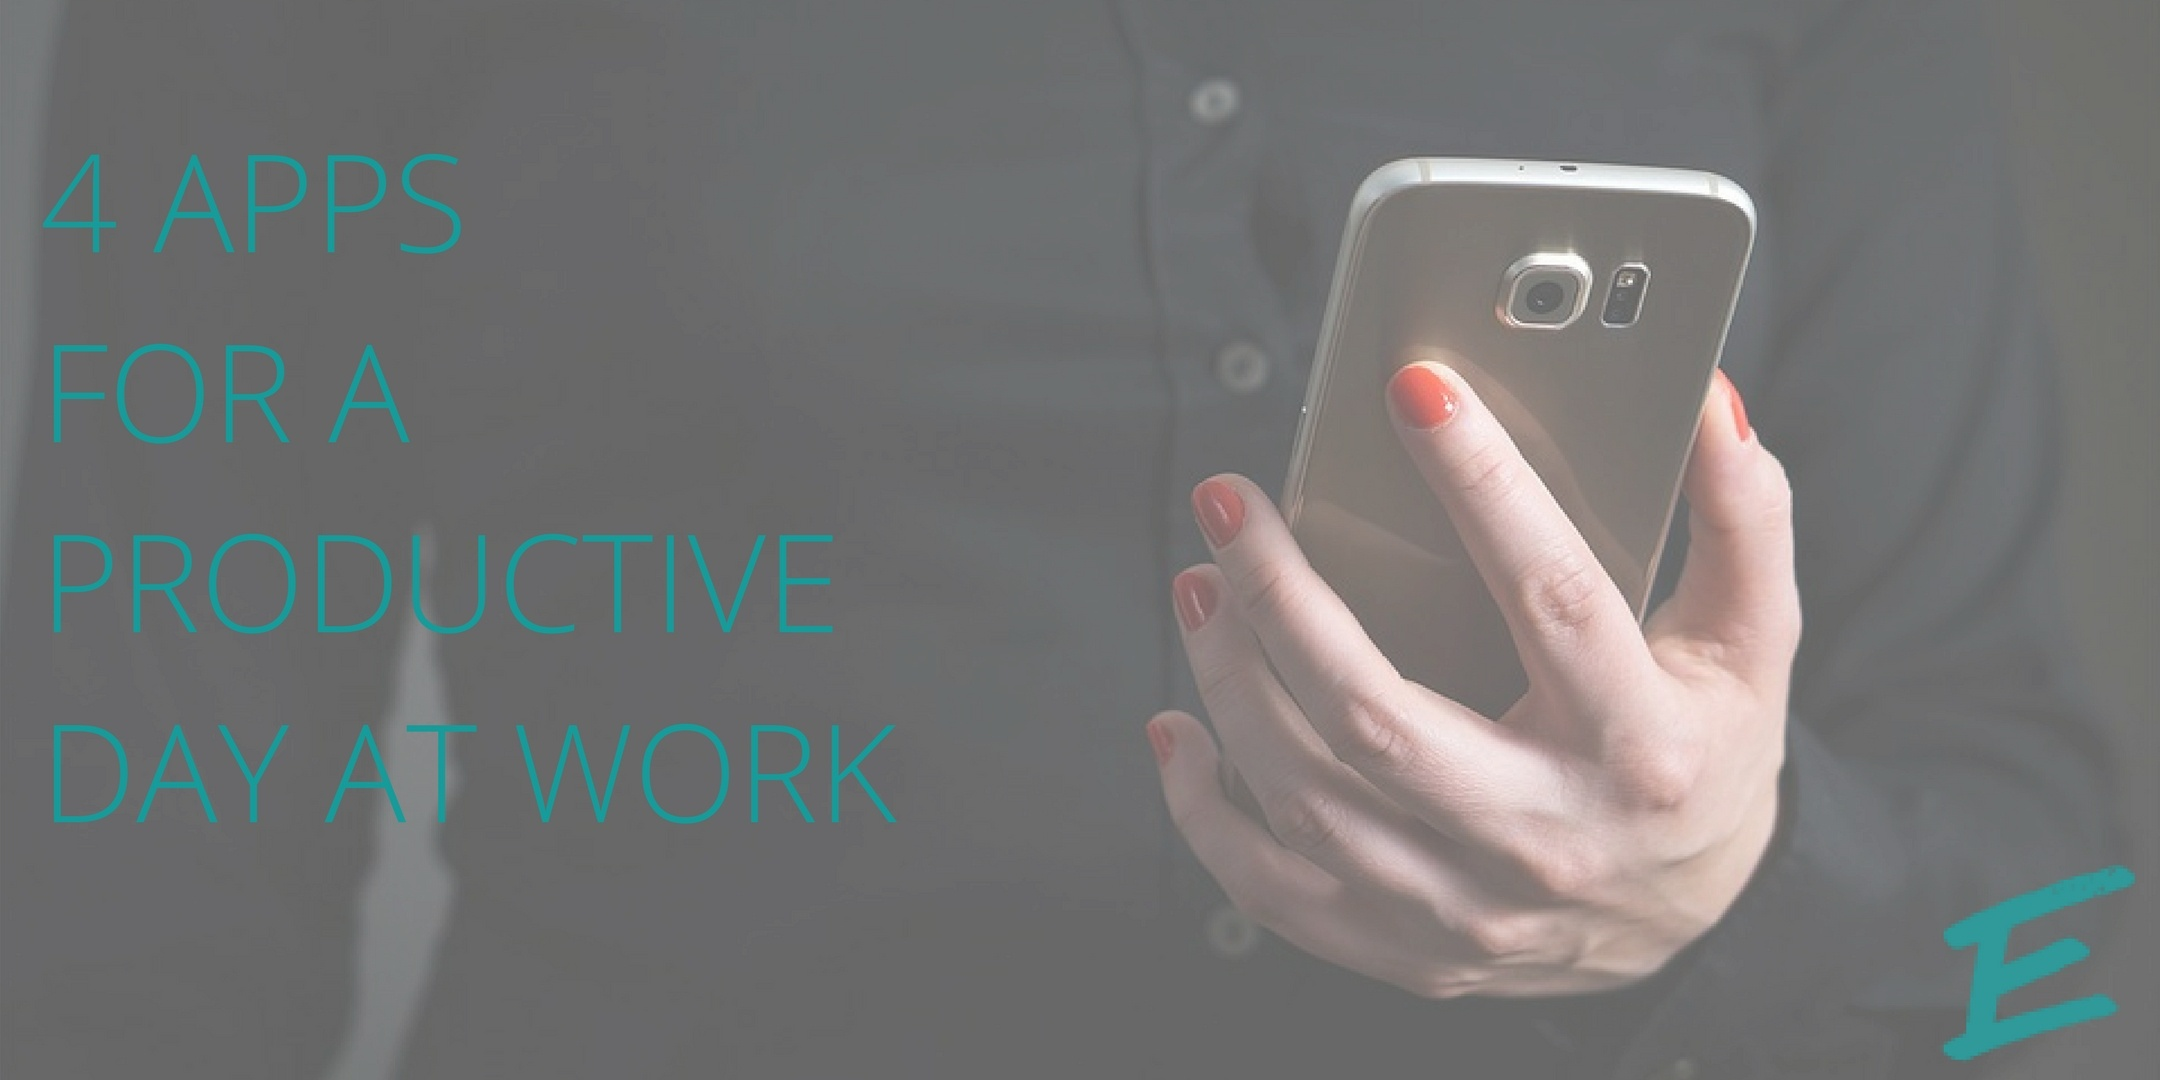 apps-productive-day-at-work